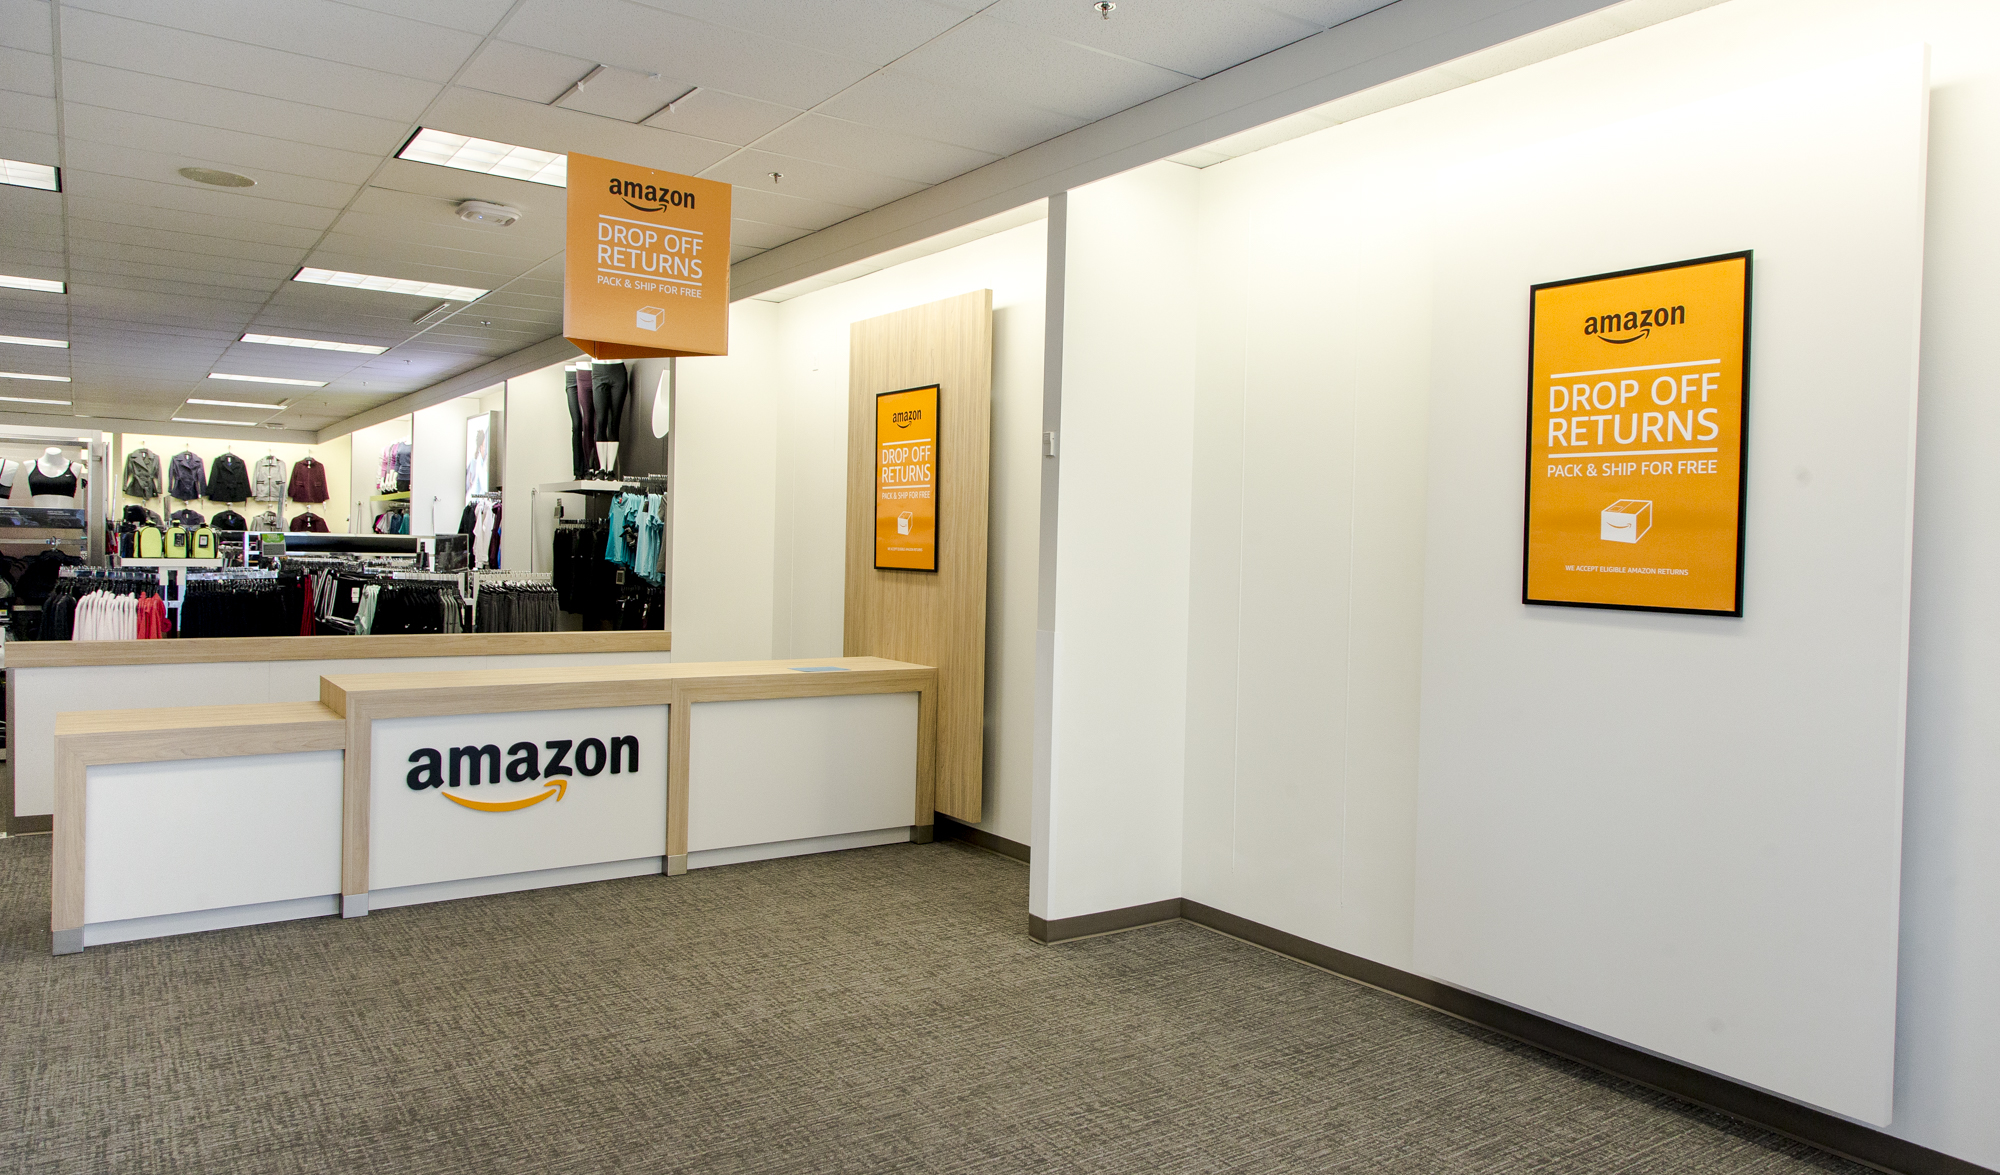 Amazon Smart Home Welcome To The New Amazon Smart Home Experience At Kohls